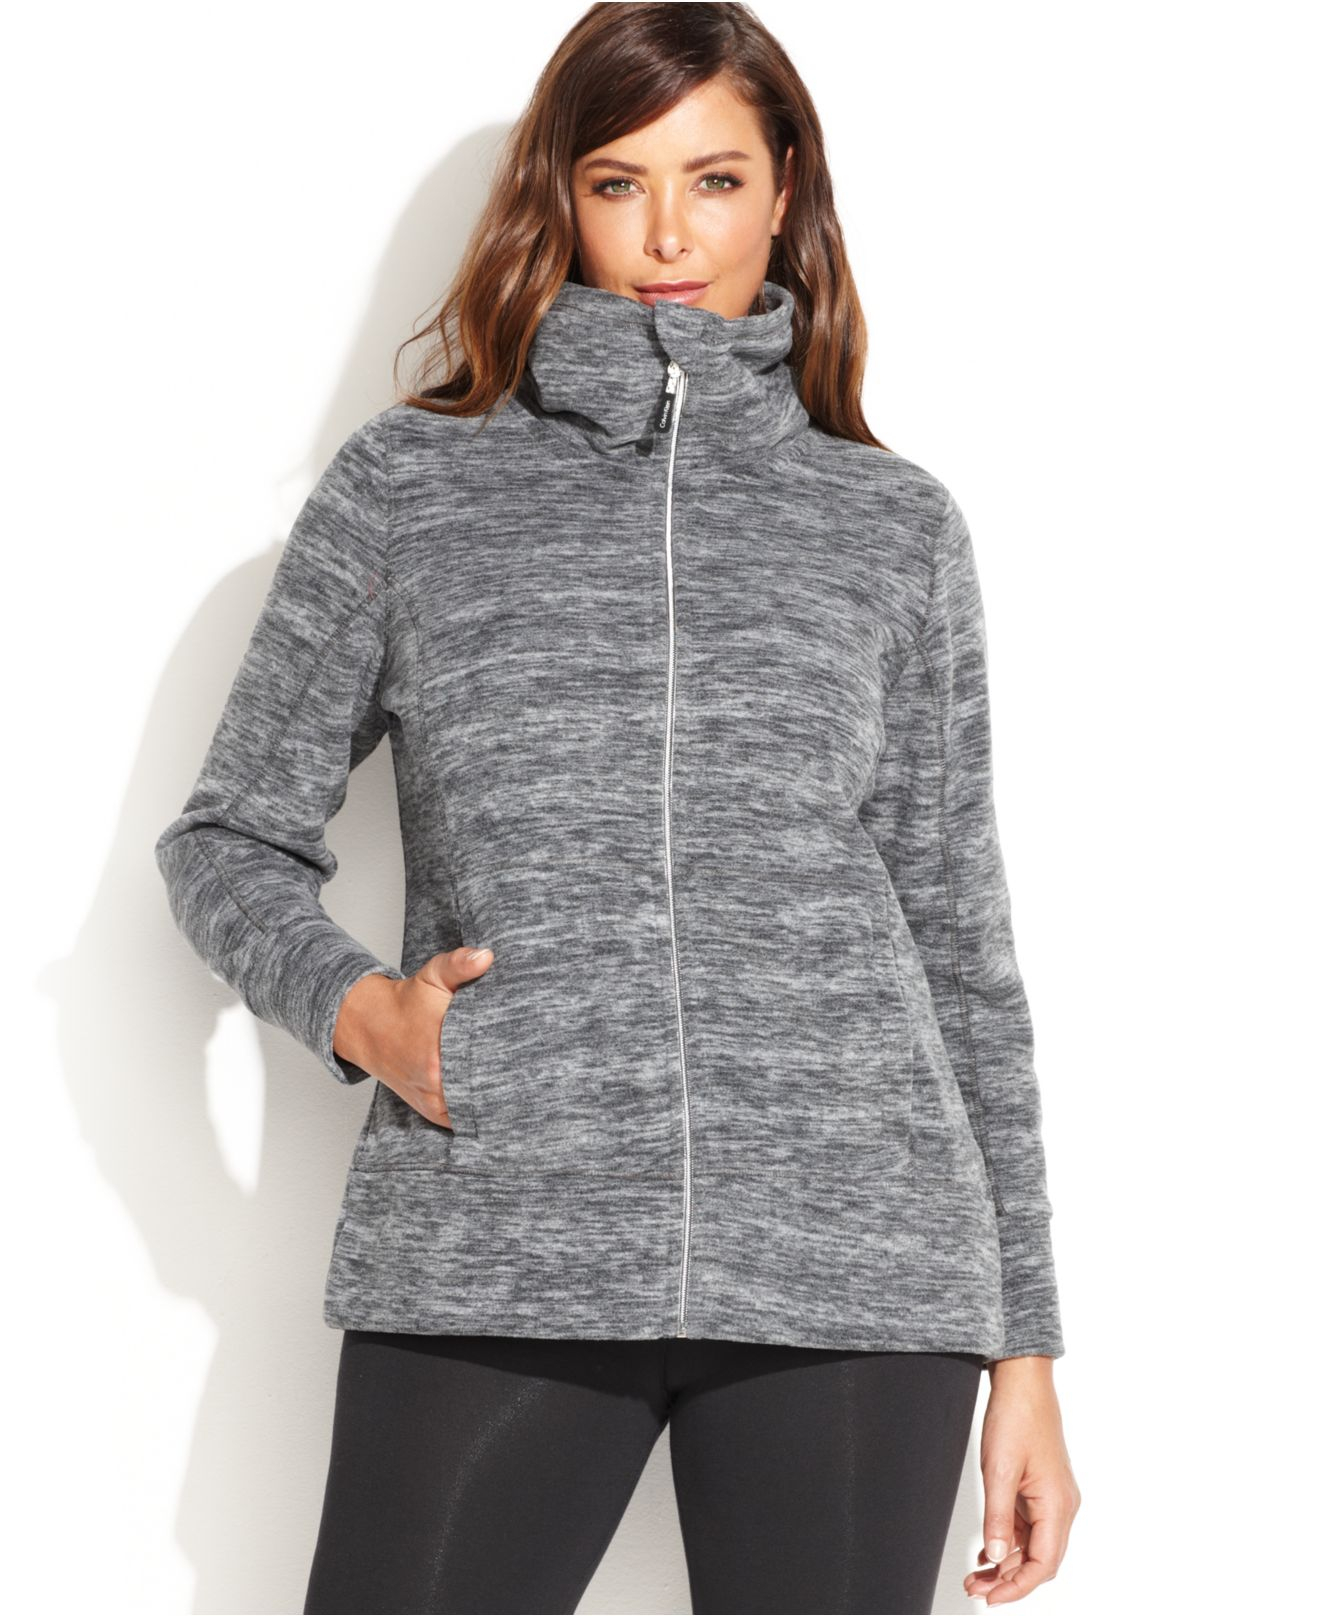 Our plus size printed fleece knit baseball jacket is most loved for its relaxed comfortable fit and unique details. You'll love the pretty wearable colors and easy-to-layer shape. You'll love the pretty wearable colors and easy-to-layer shape.